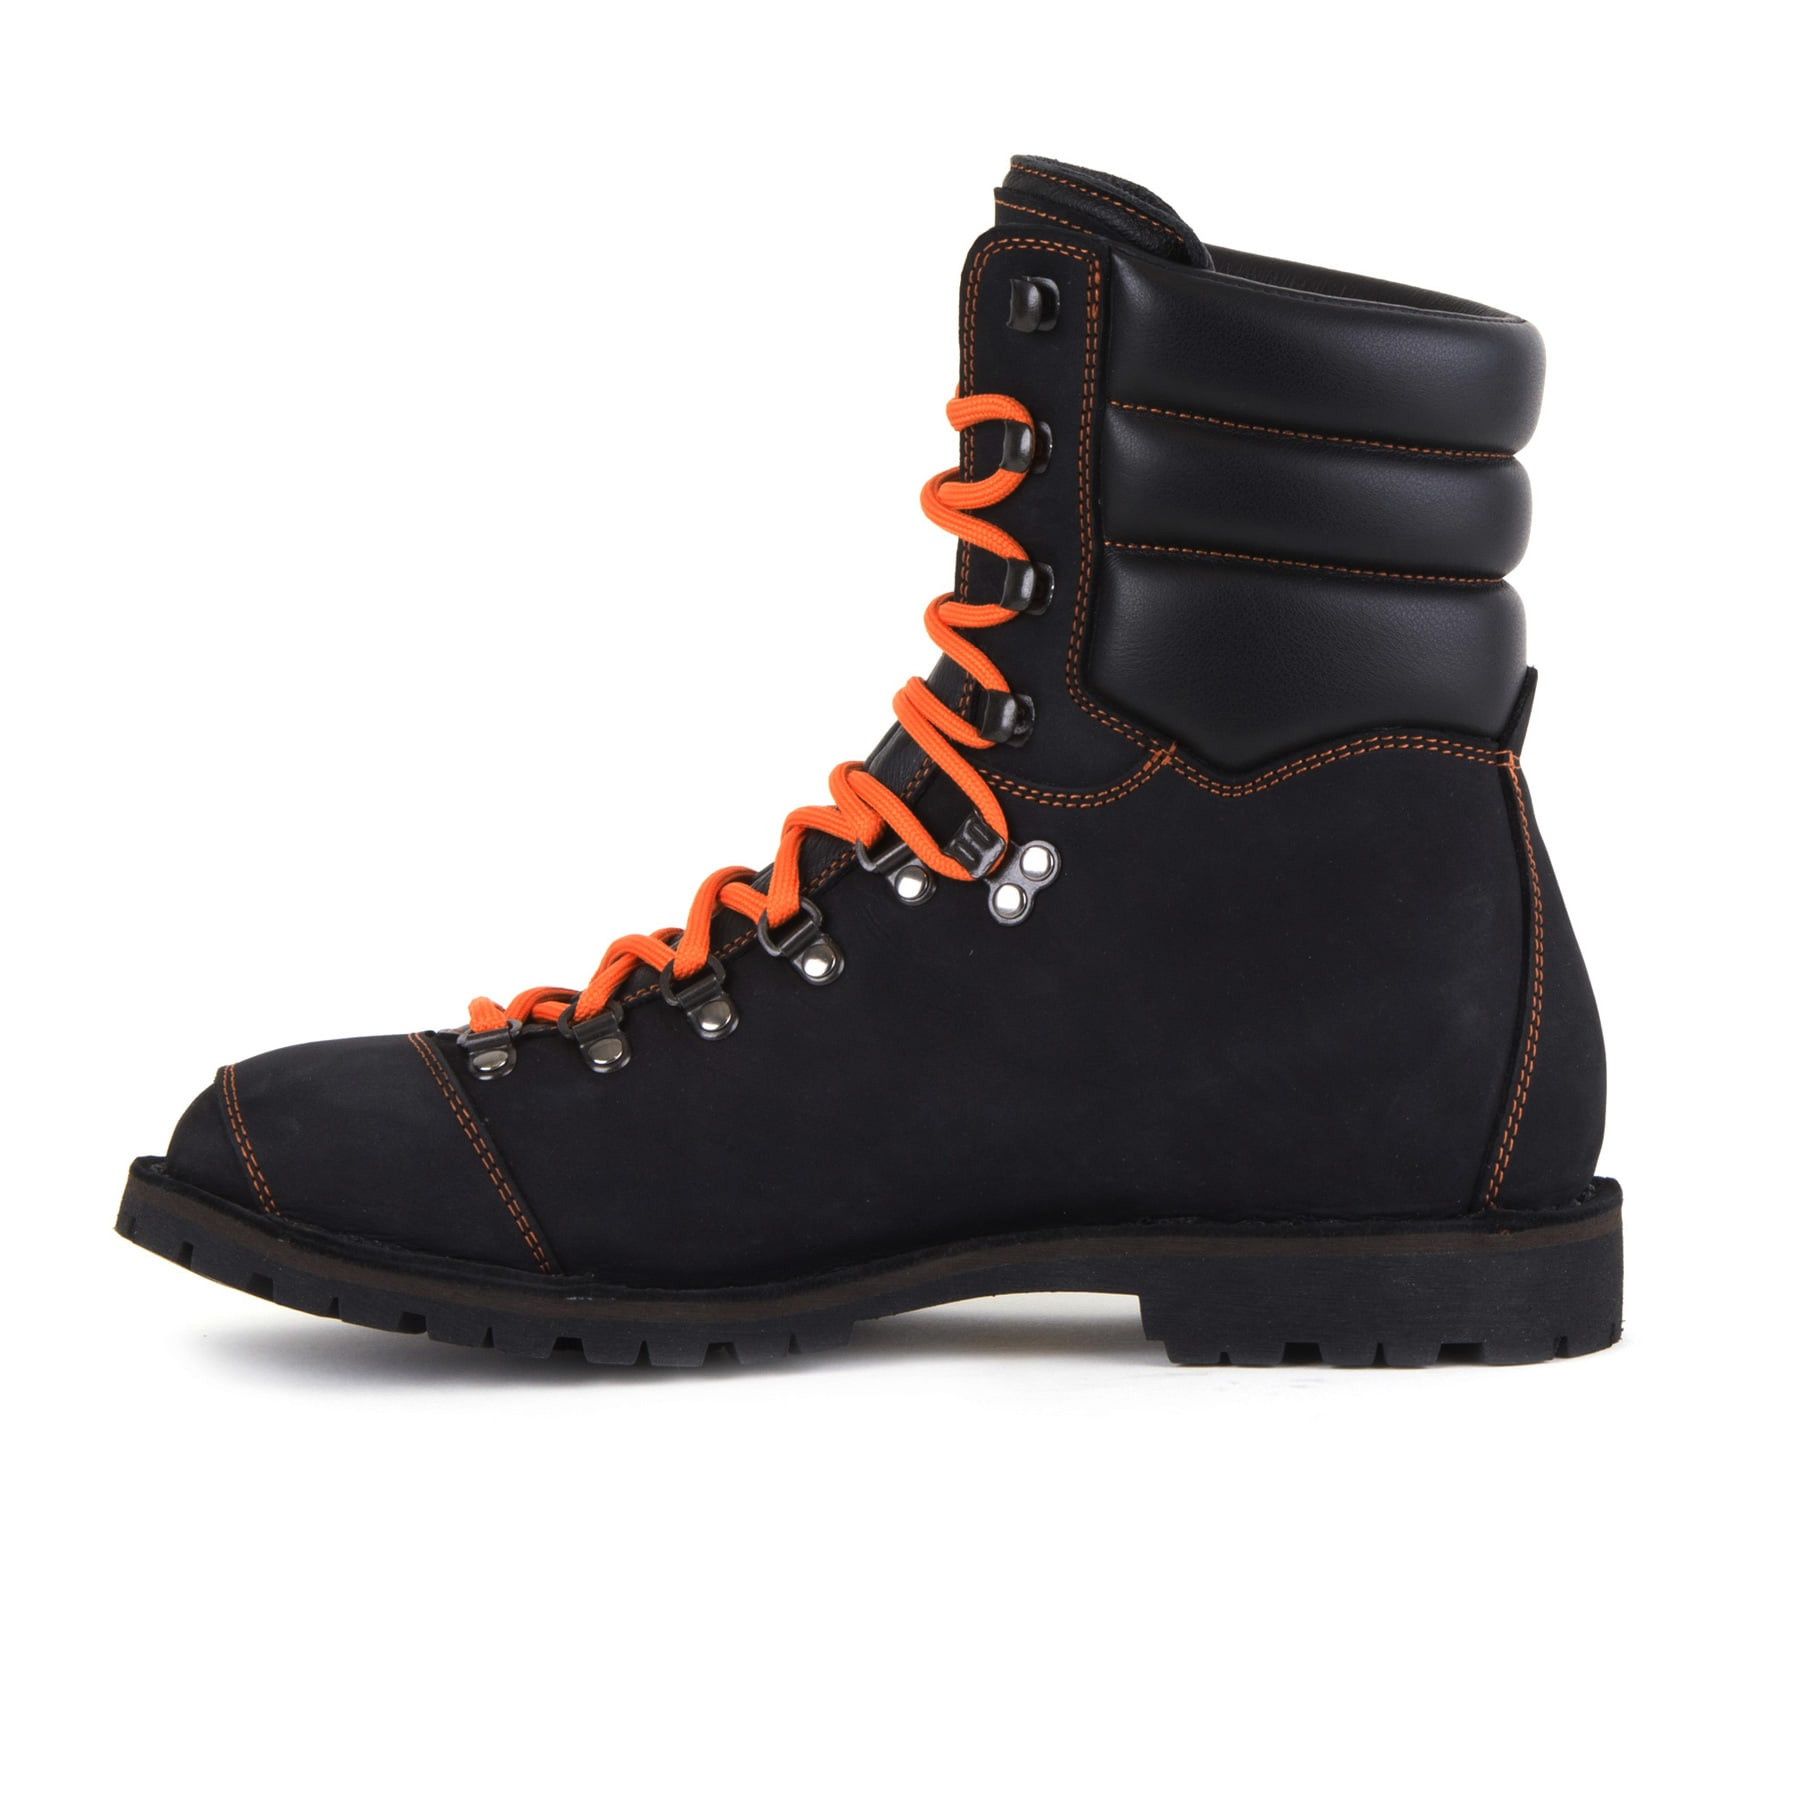 Biker Boot AdventureSE Denver Black, black gents boot, orange stitching